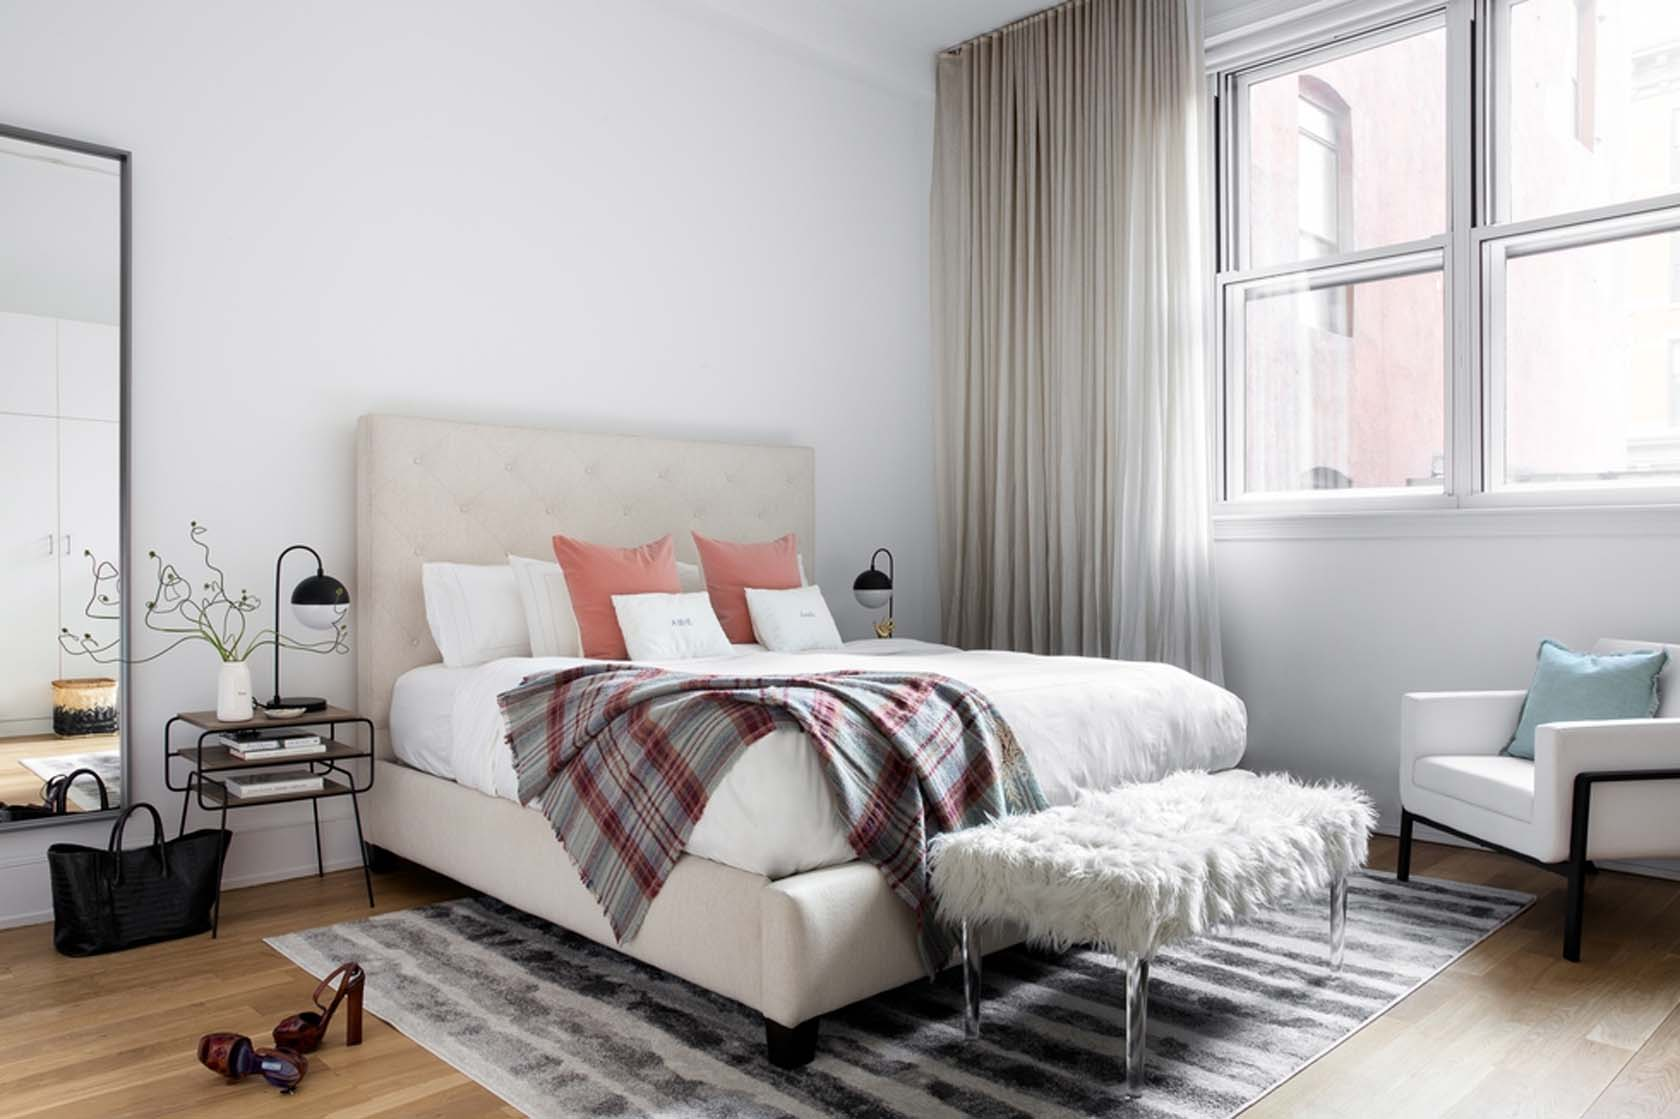 How To Redo Your Room On Budget?